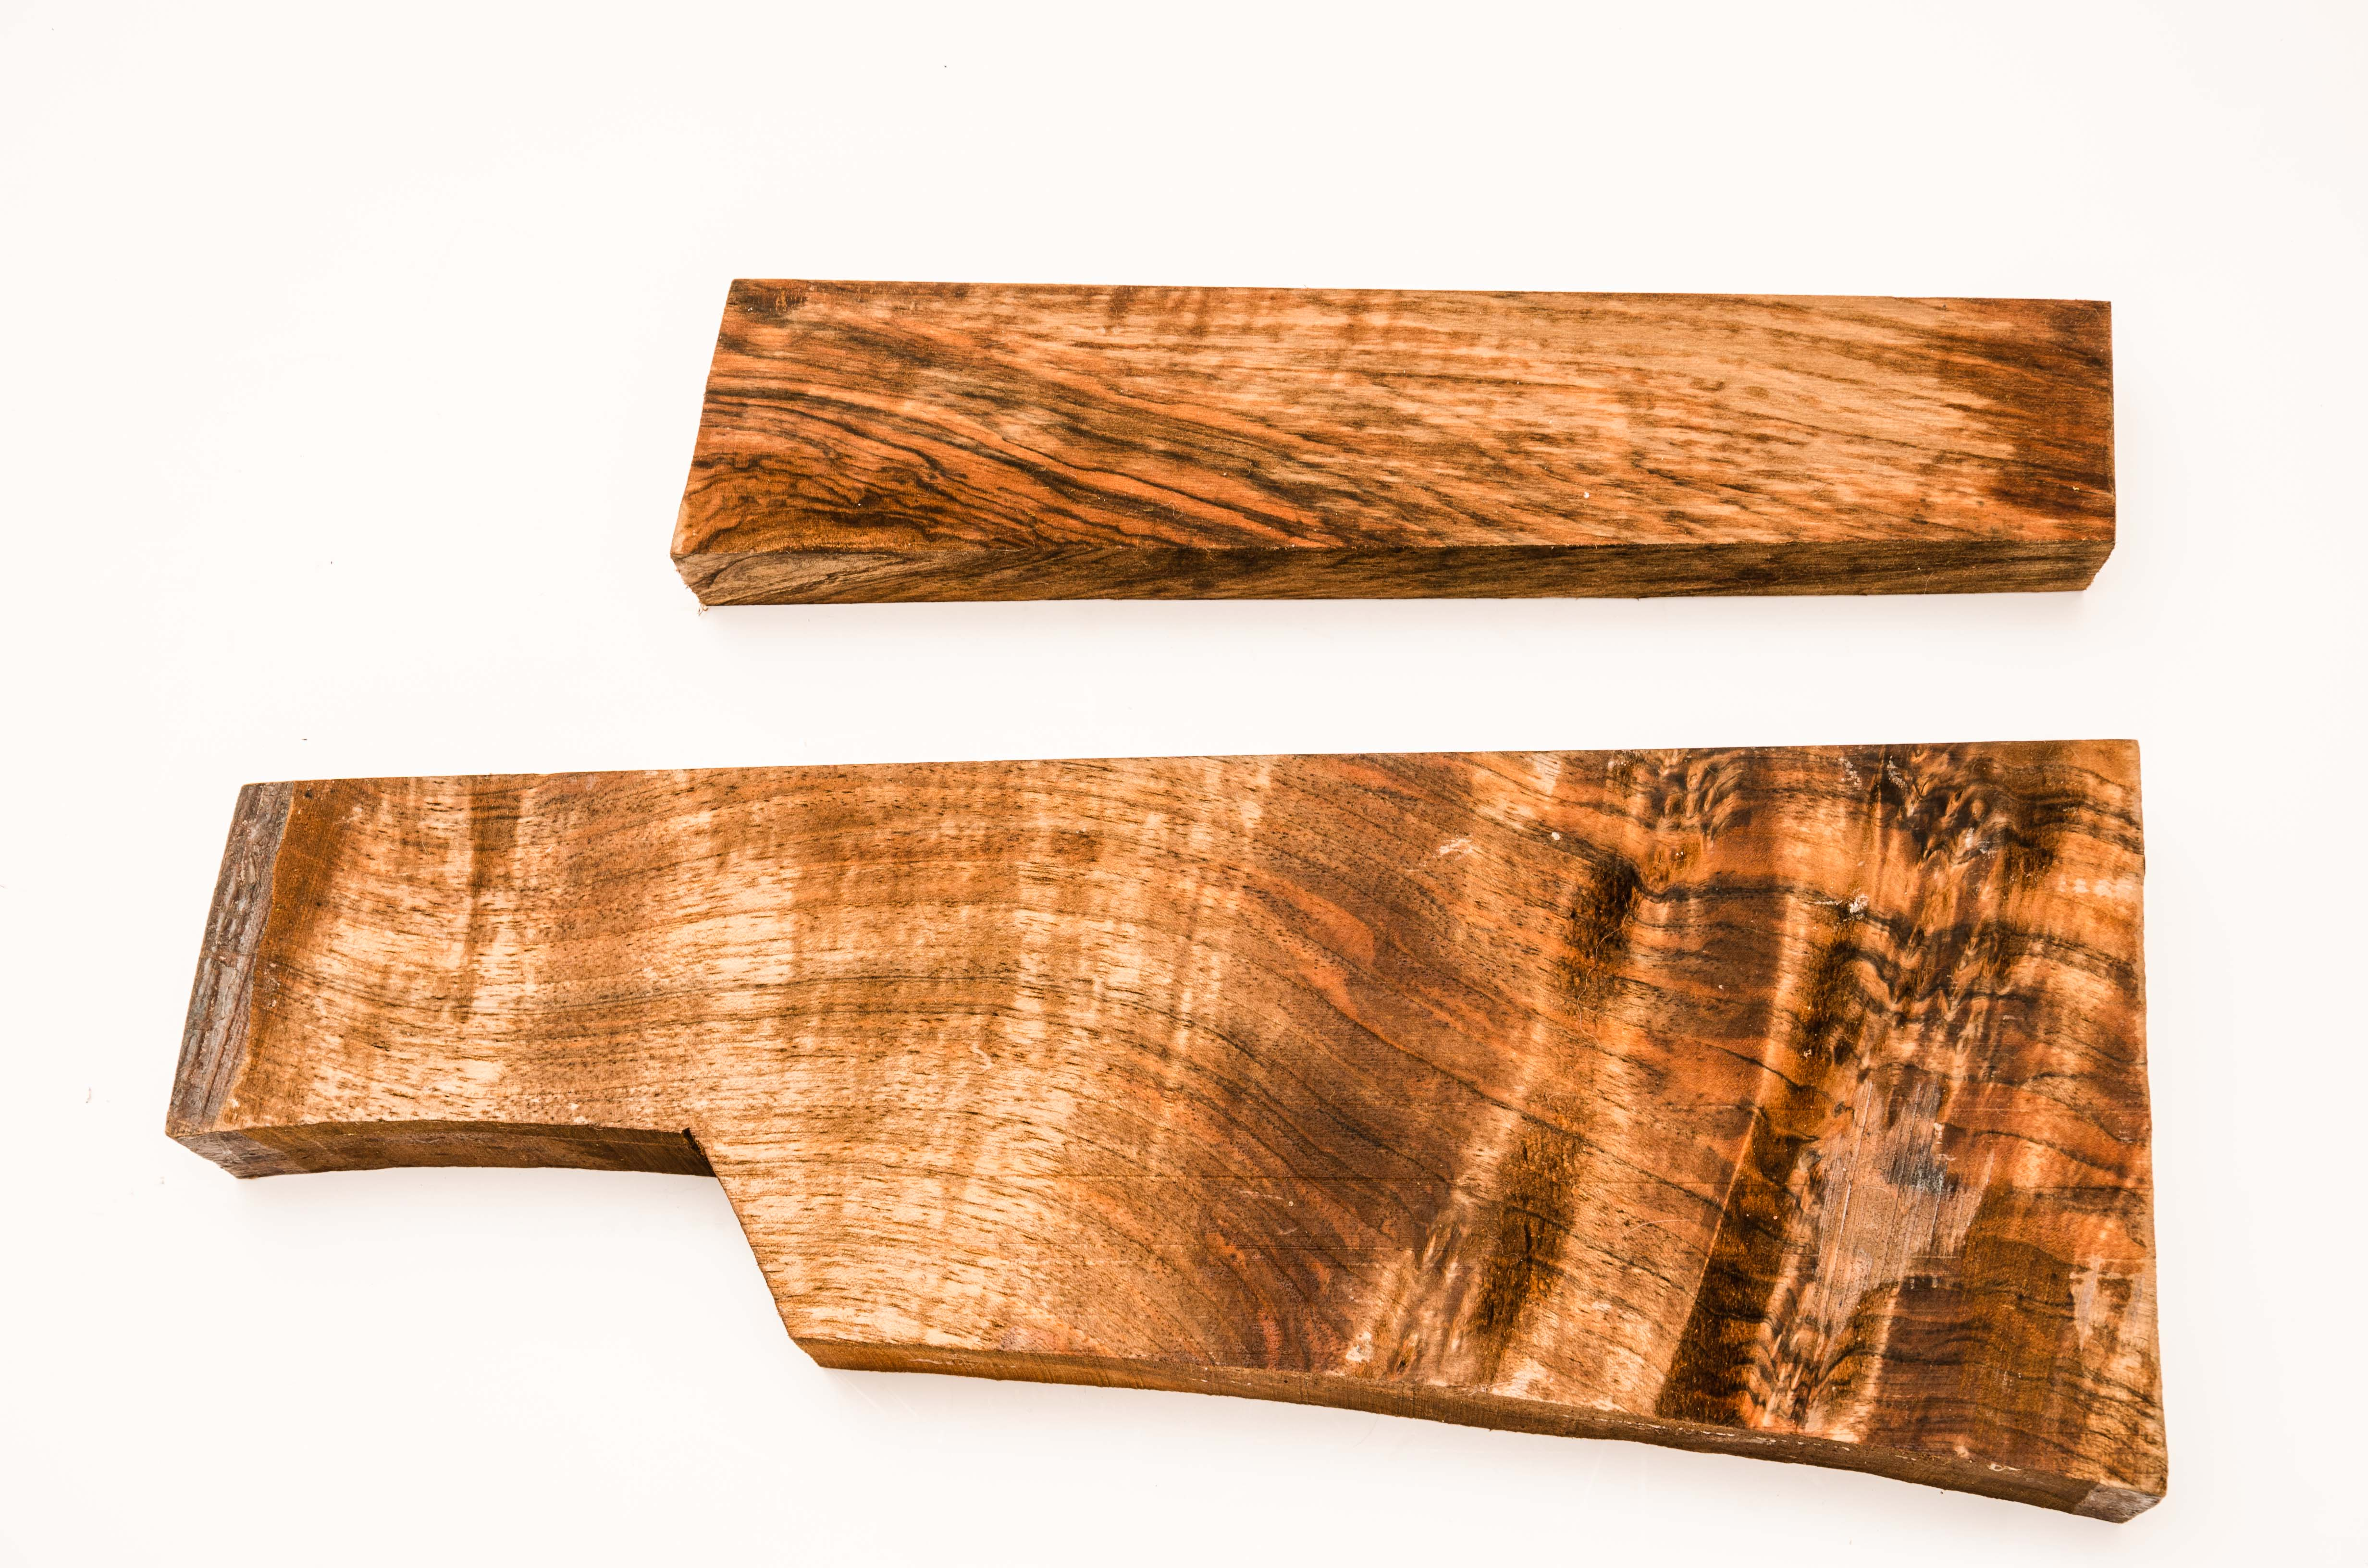 walnut_stock_blanks_for_guns_and_rifles-0352